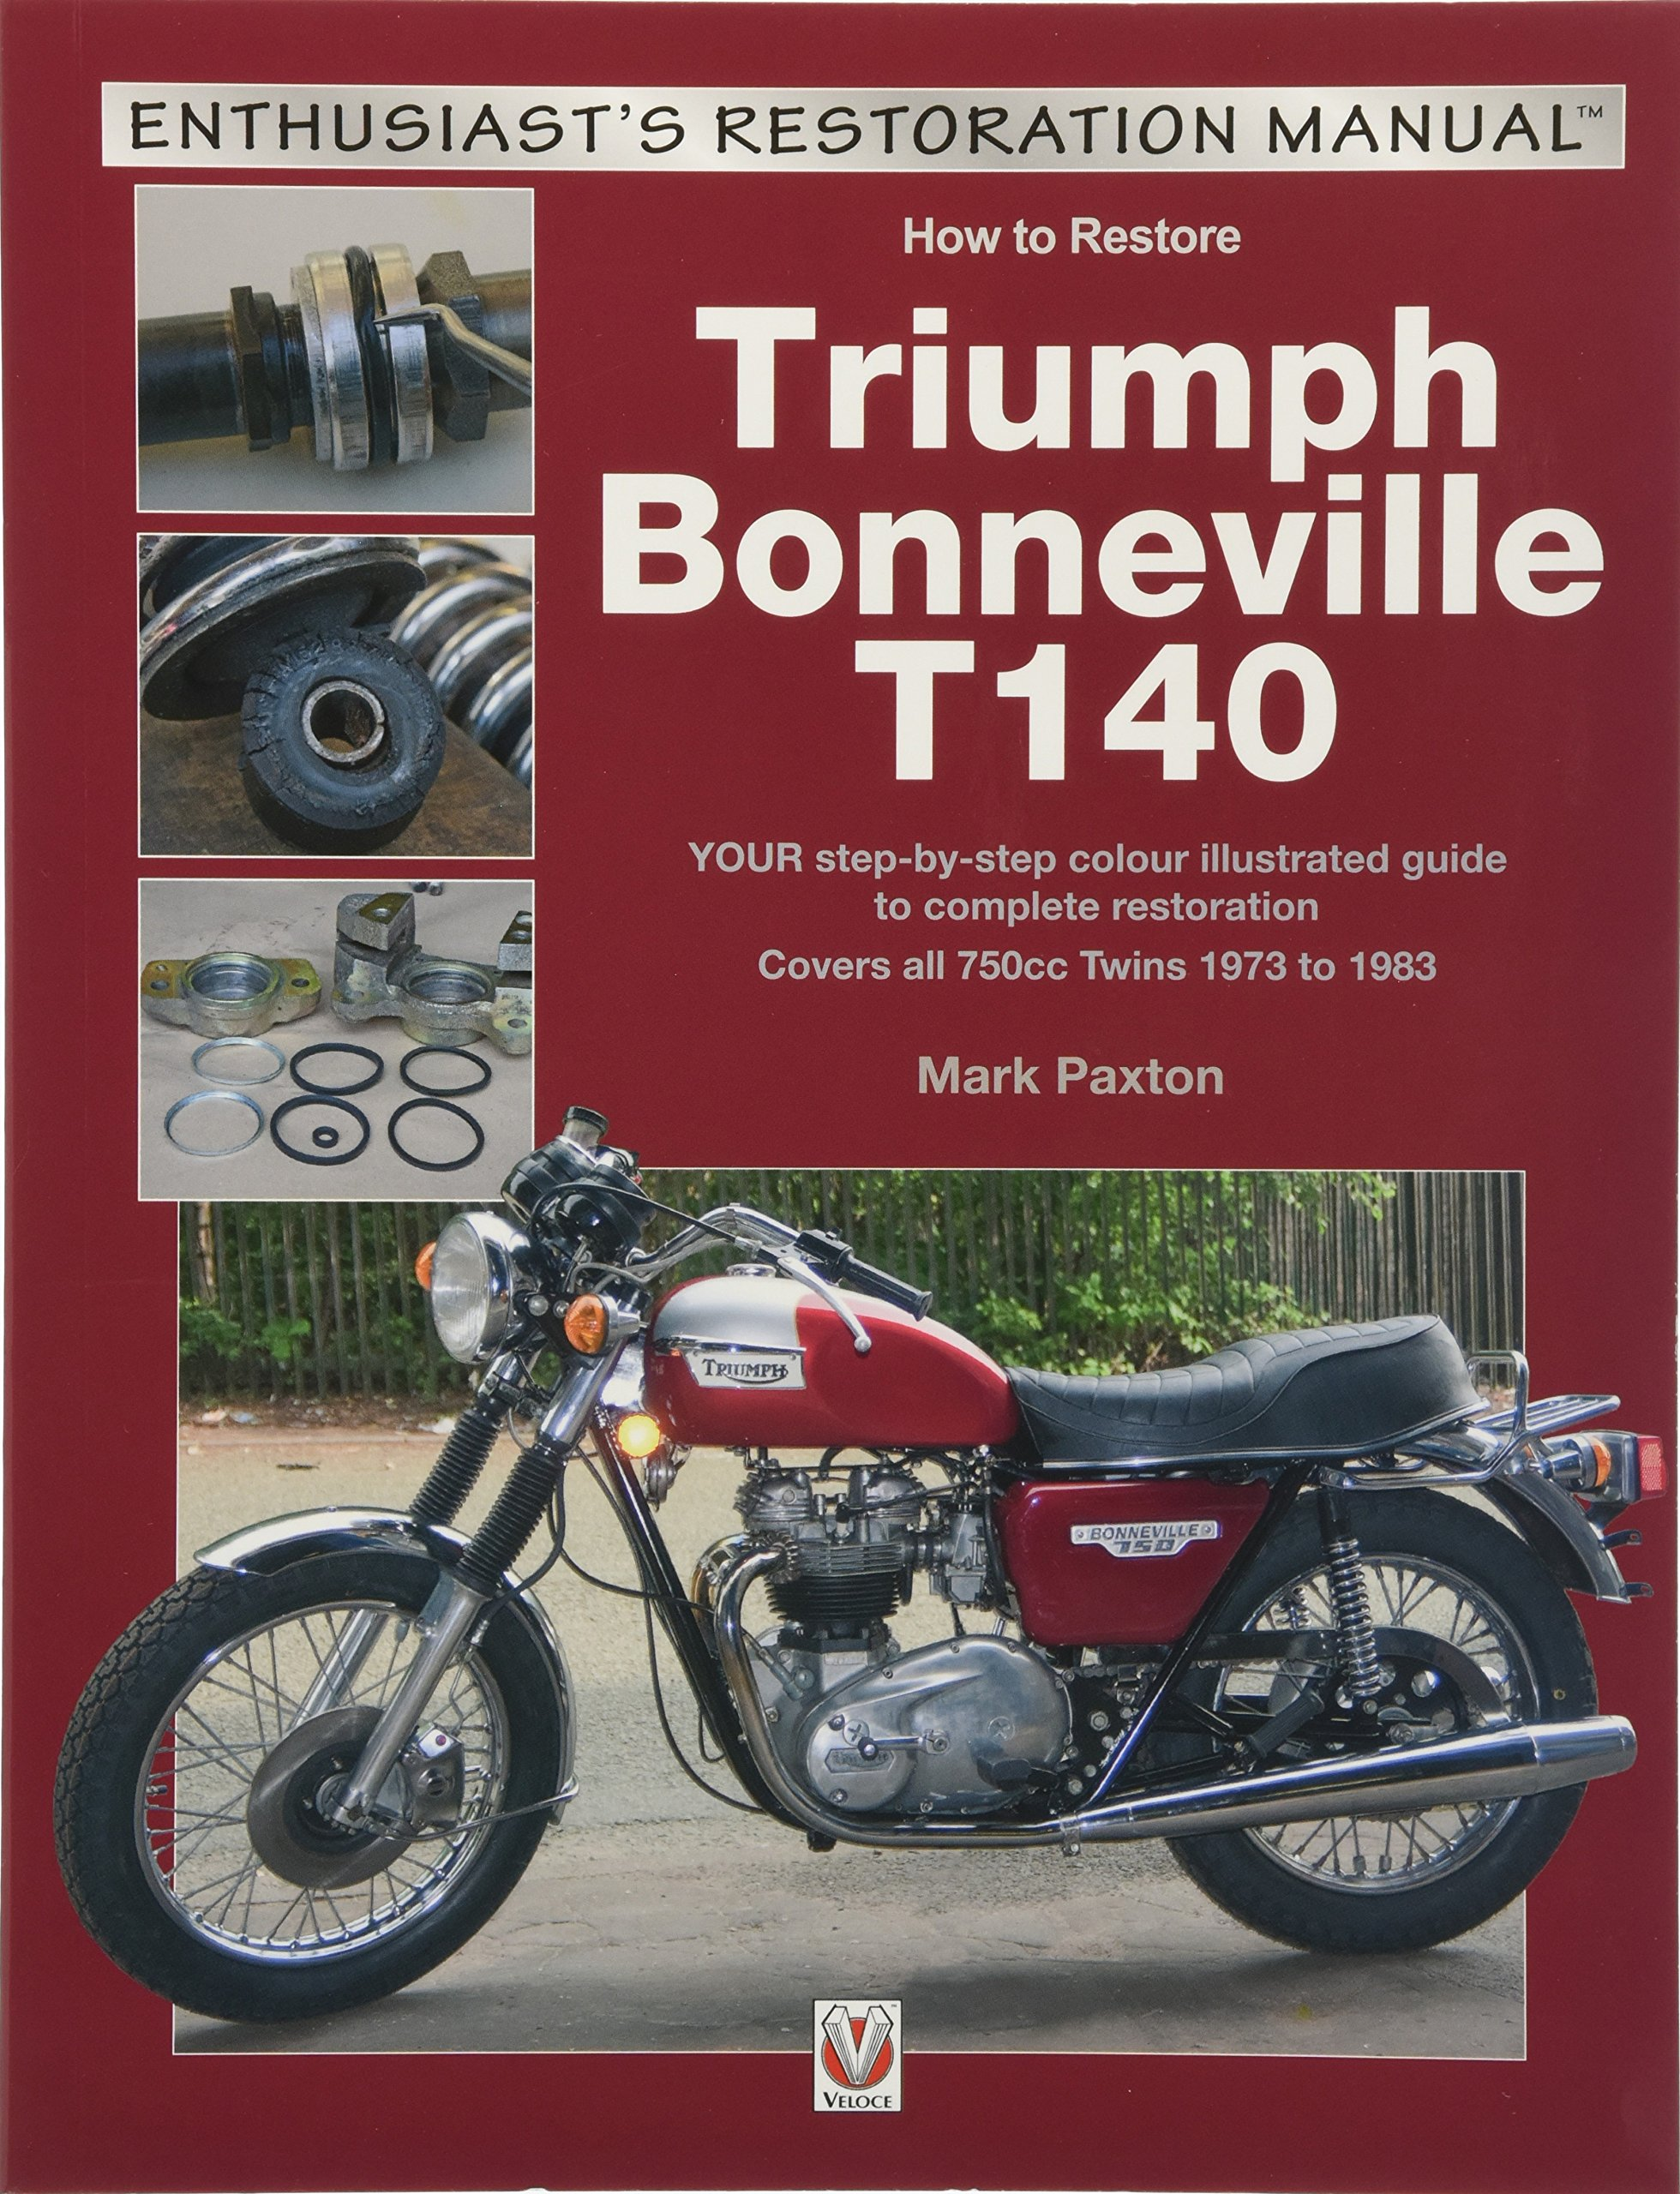 Triumph Bonneville T140 (Enthusiast's Restoration Manual): Amazon.co.uk:  Mark Paxton: 9781787111493: Books